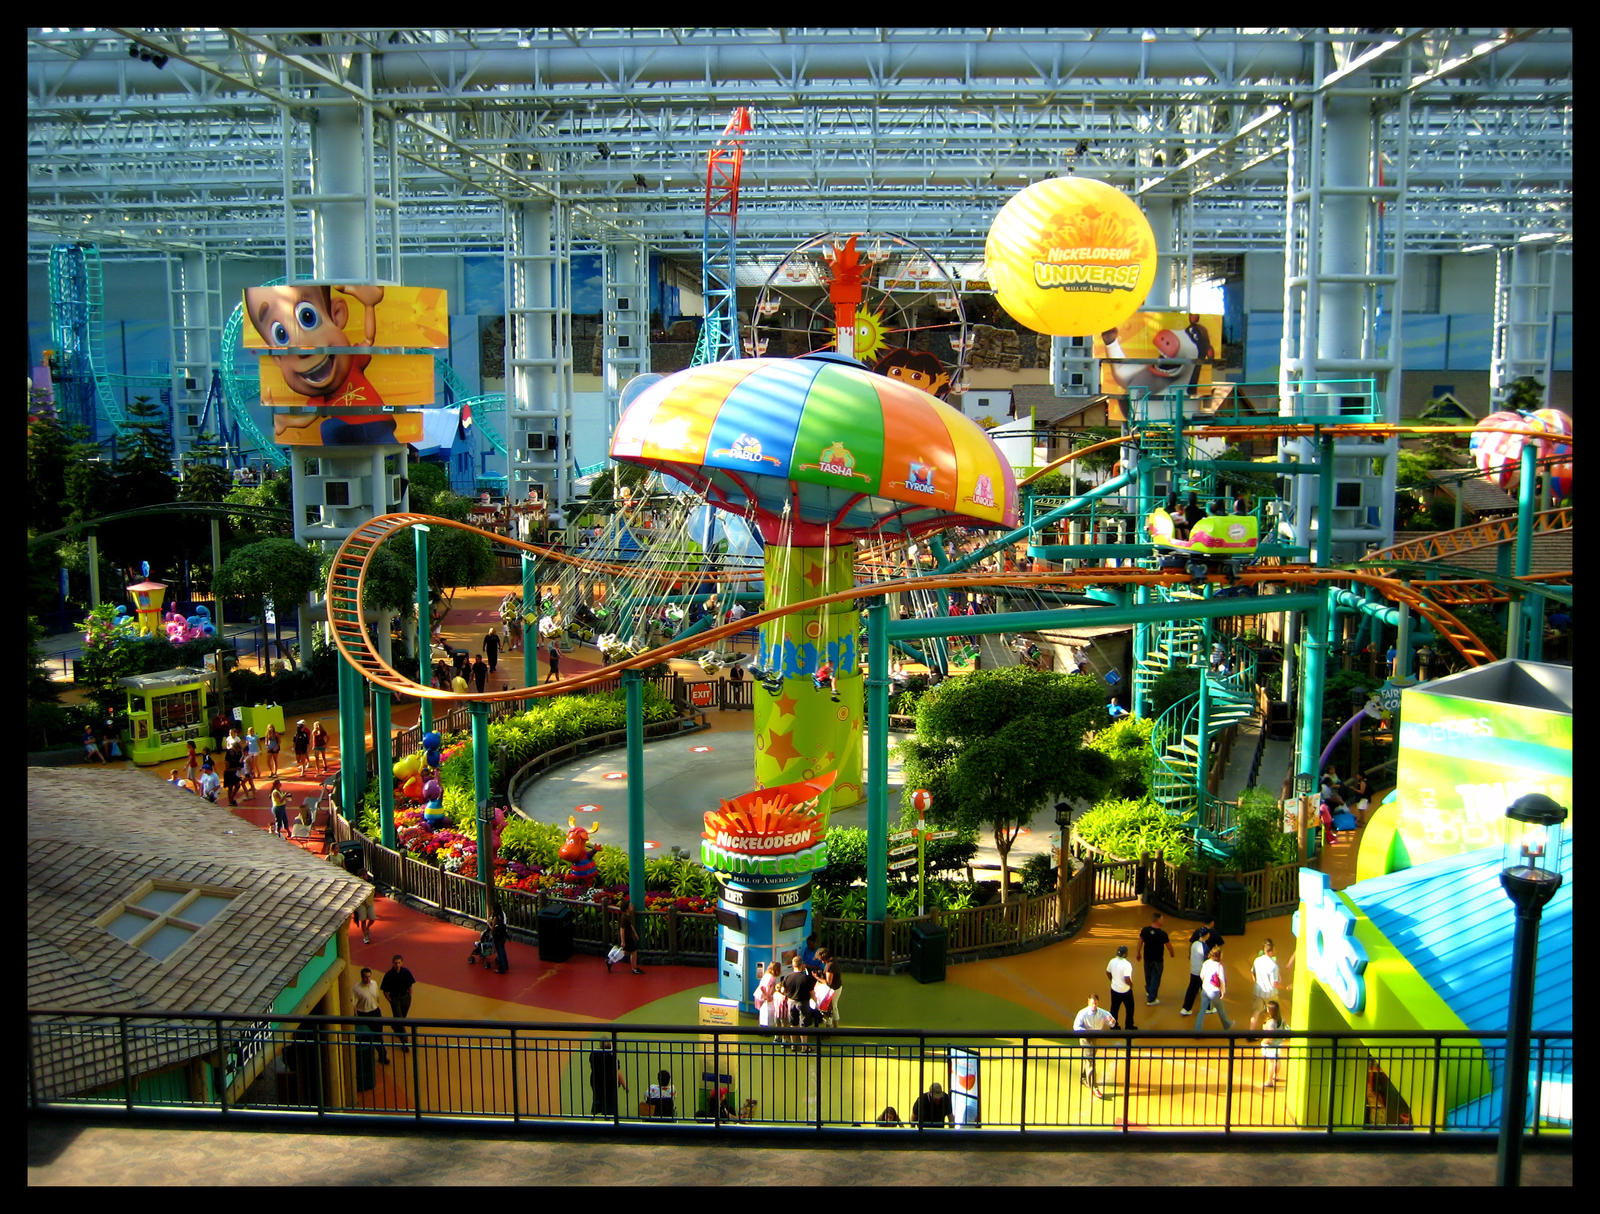 Nickelodeon Universe (originally Knott's Camp Snoopy, later known as The Park at MOA) is the seven-acre (28, m²) indoor amusement park in the center of the Mall of America (MOA), in Bloomington, Minnesota, USA & at American Dream Meadowlands in East Rutherford NJ (Opening in April ).